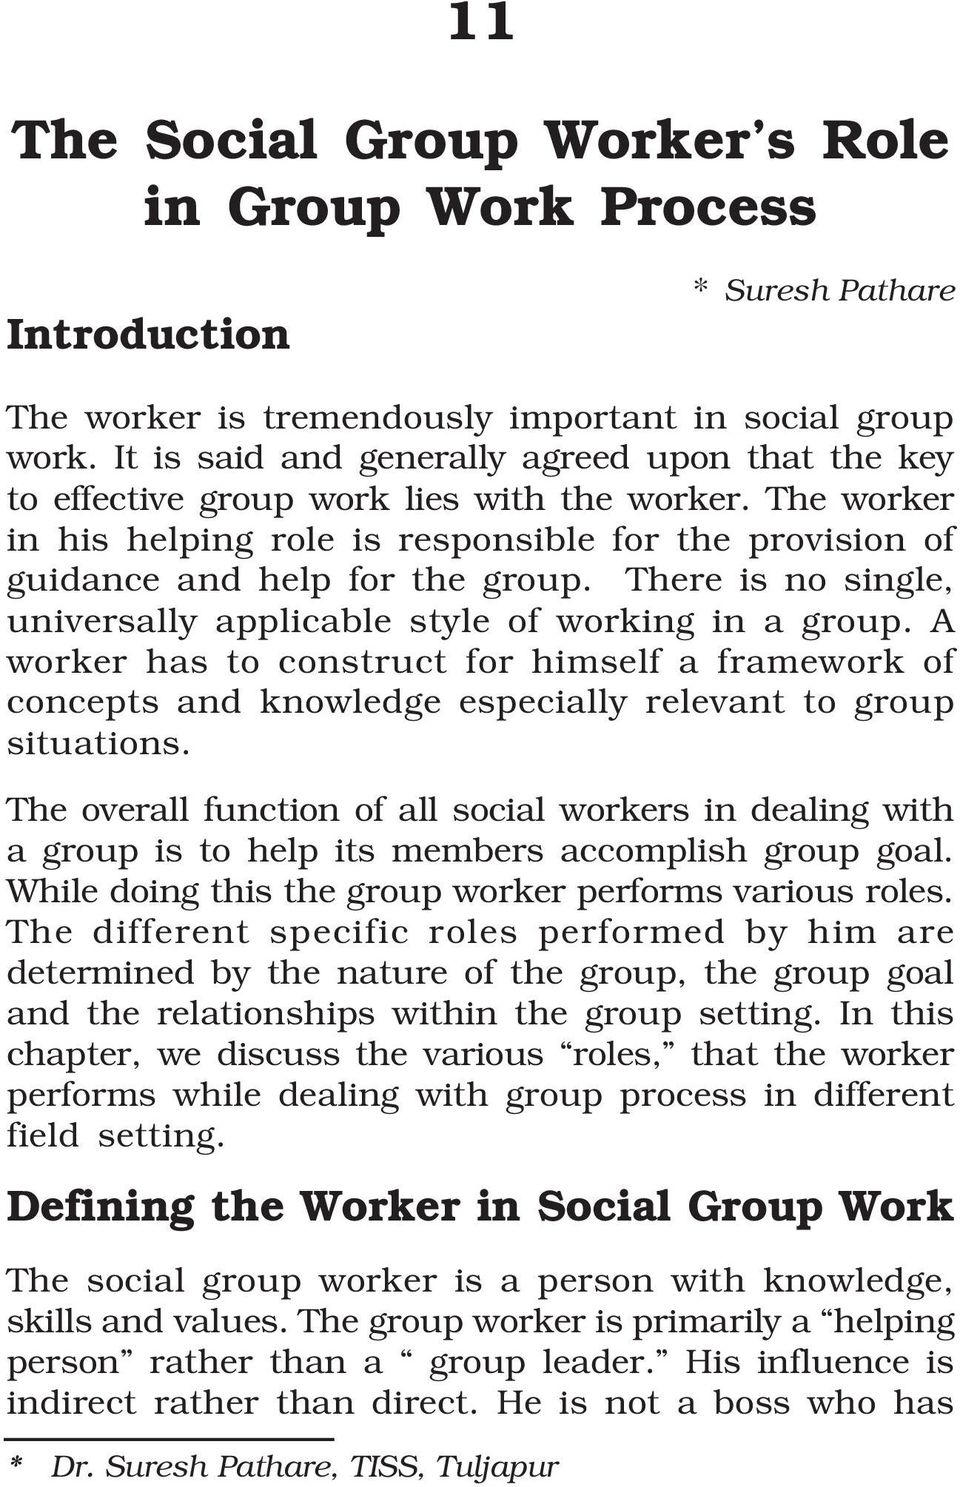 The worker in his helping role is responsible for the provision of guidance and help for the group. There is no single, universally applicable style of working in a group.